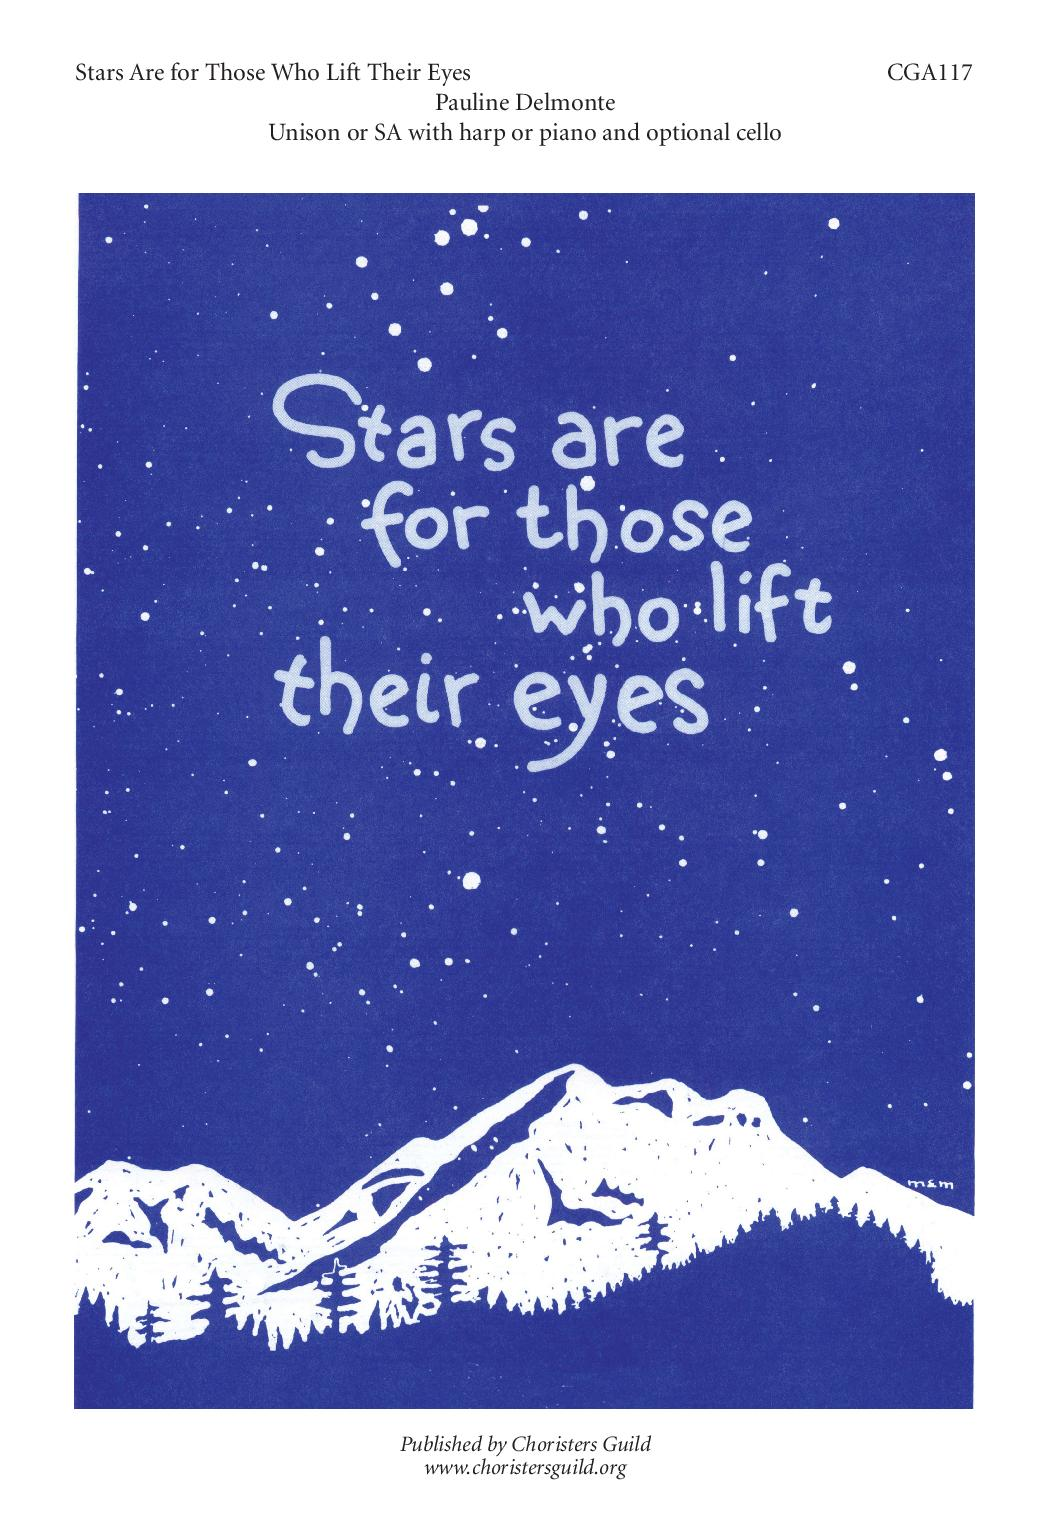 Stars Are for Those Who Lift Their Eyes